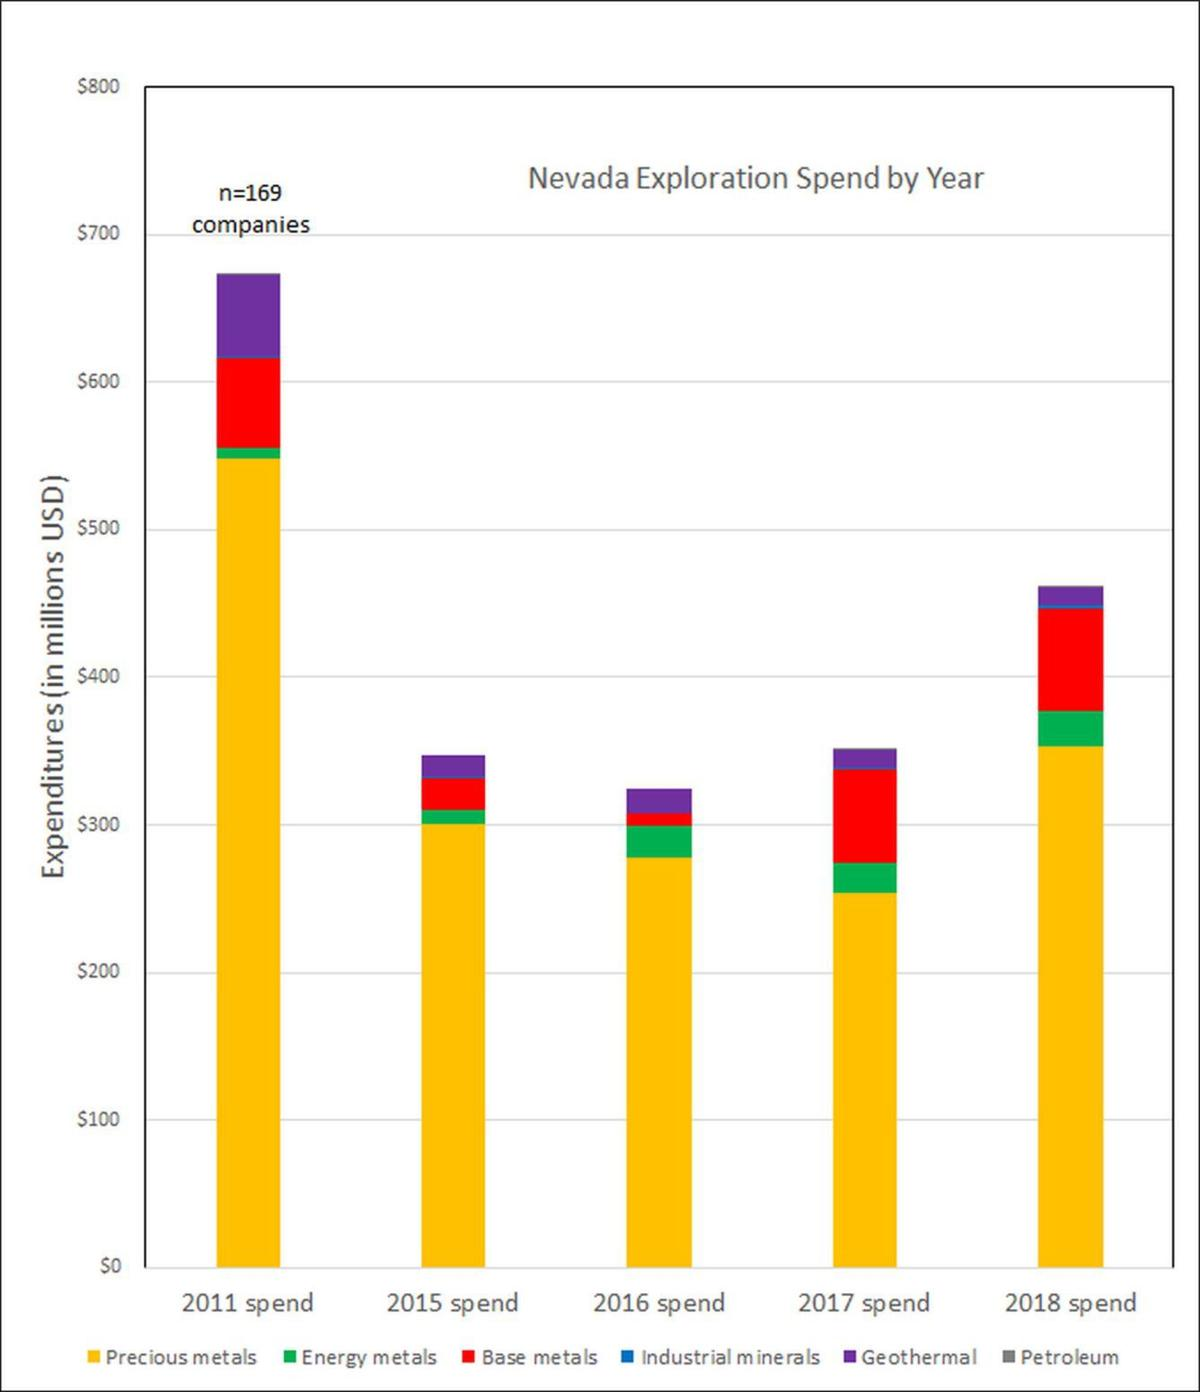 Nevada Exploration Spend By Year